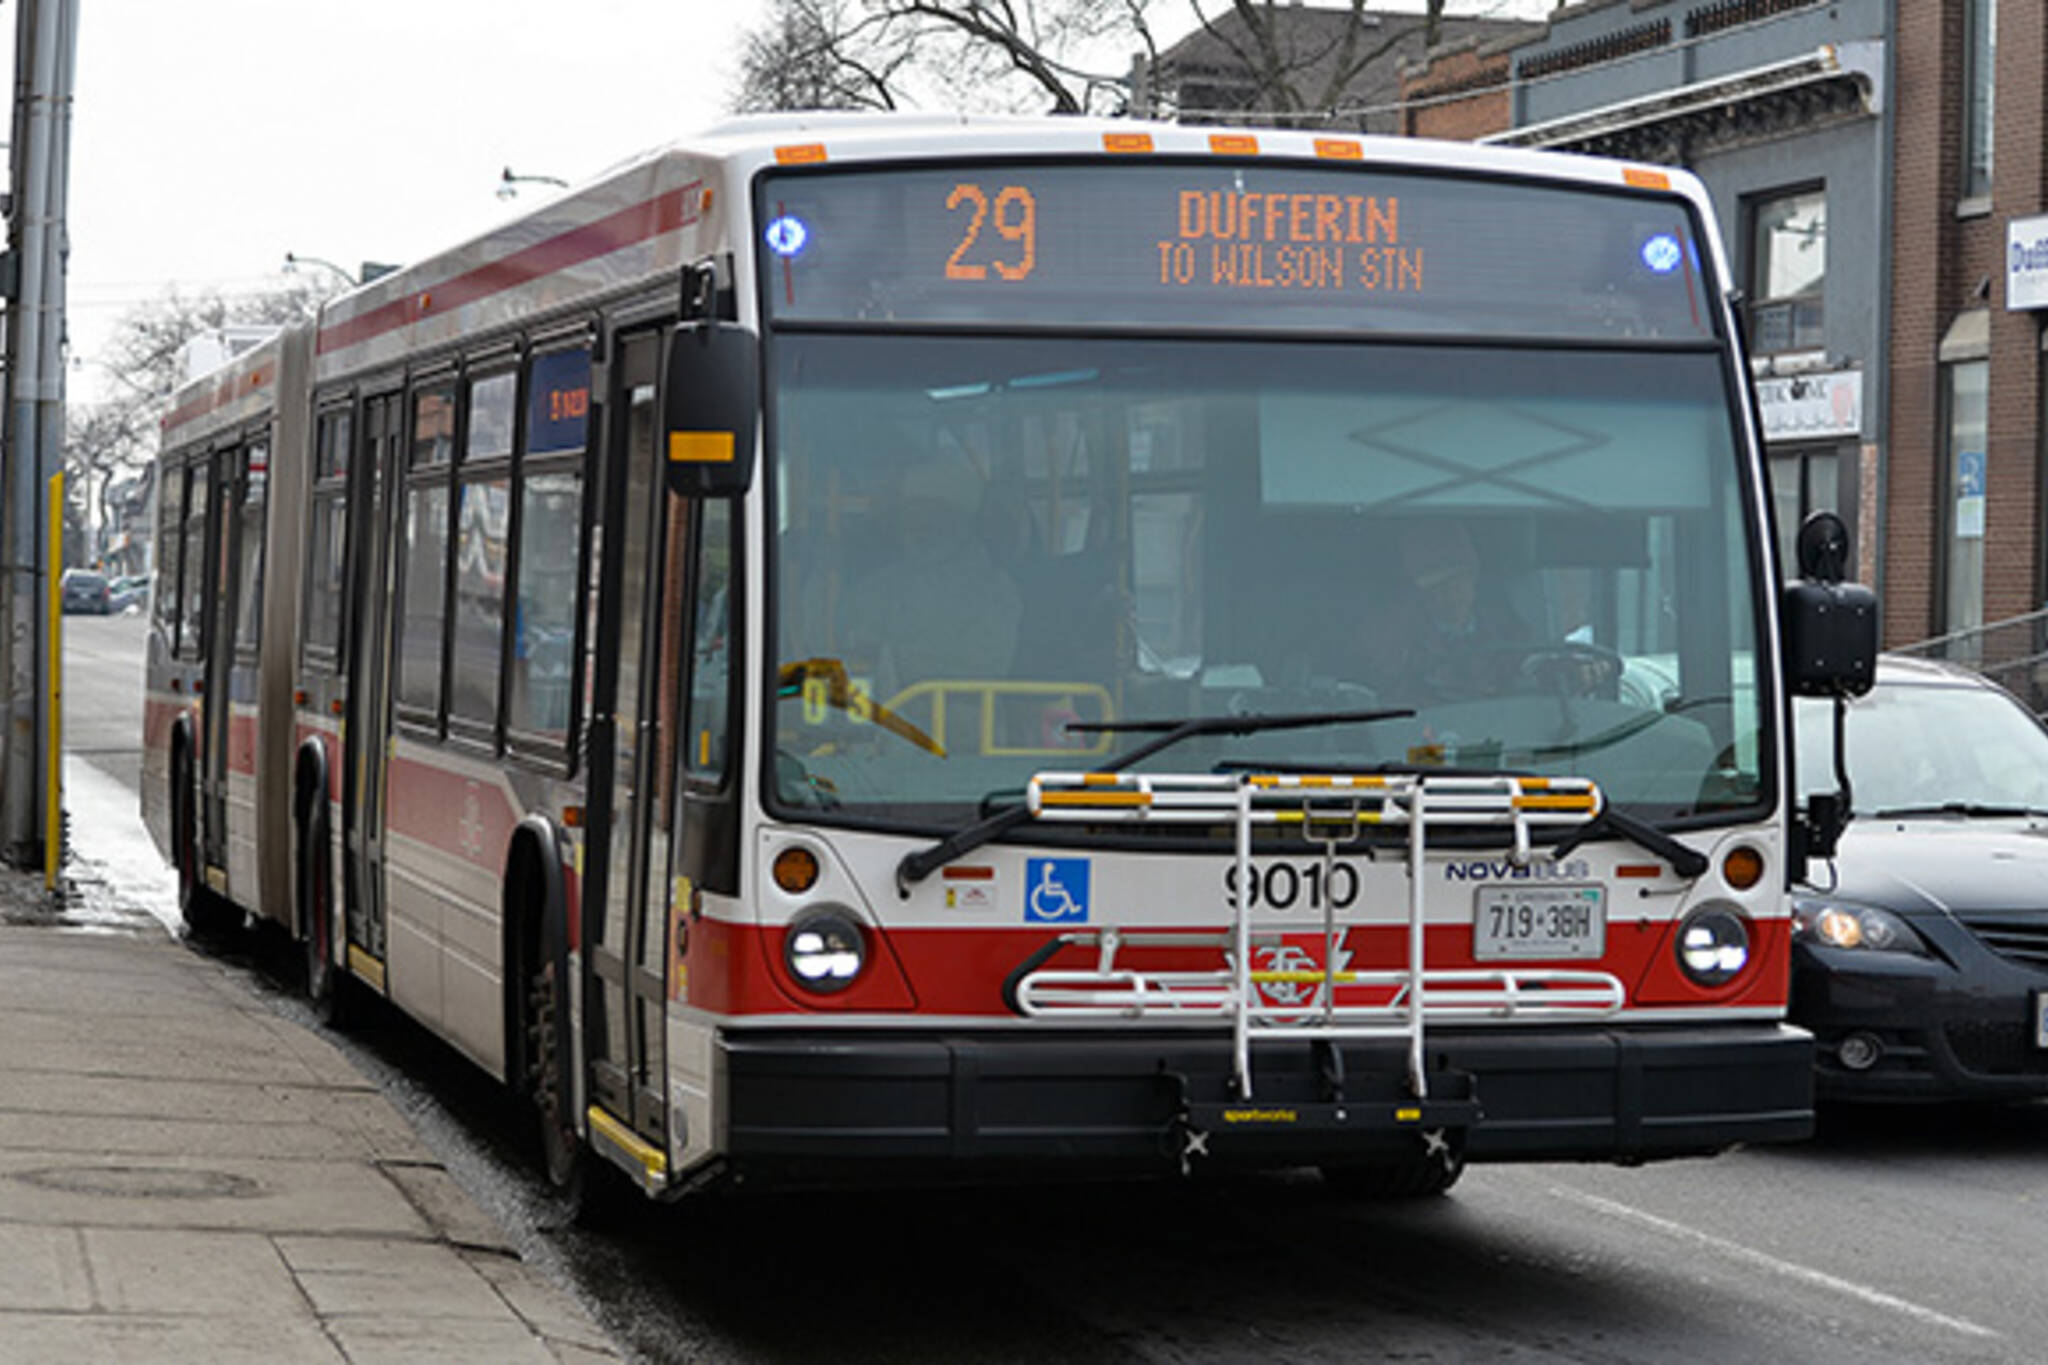 Express bus routes Toronto